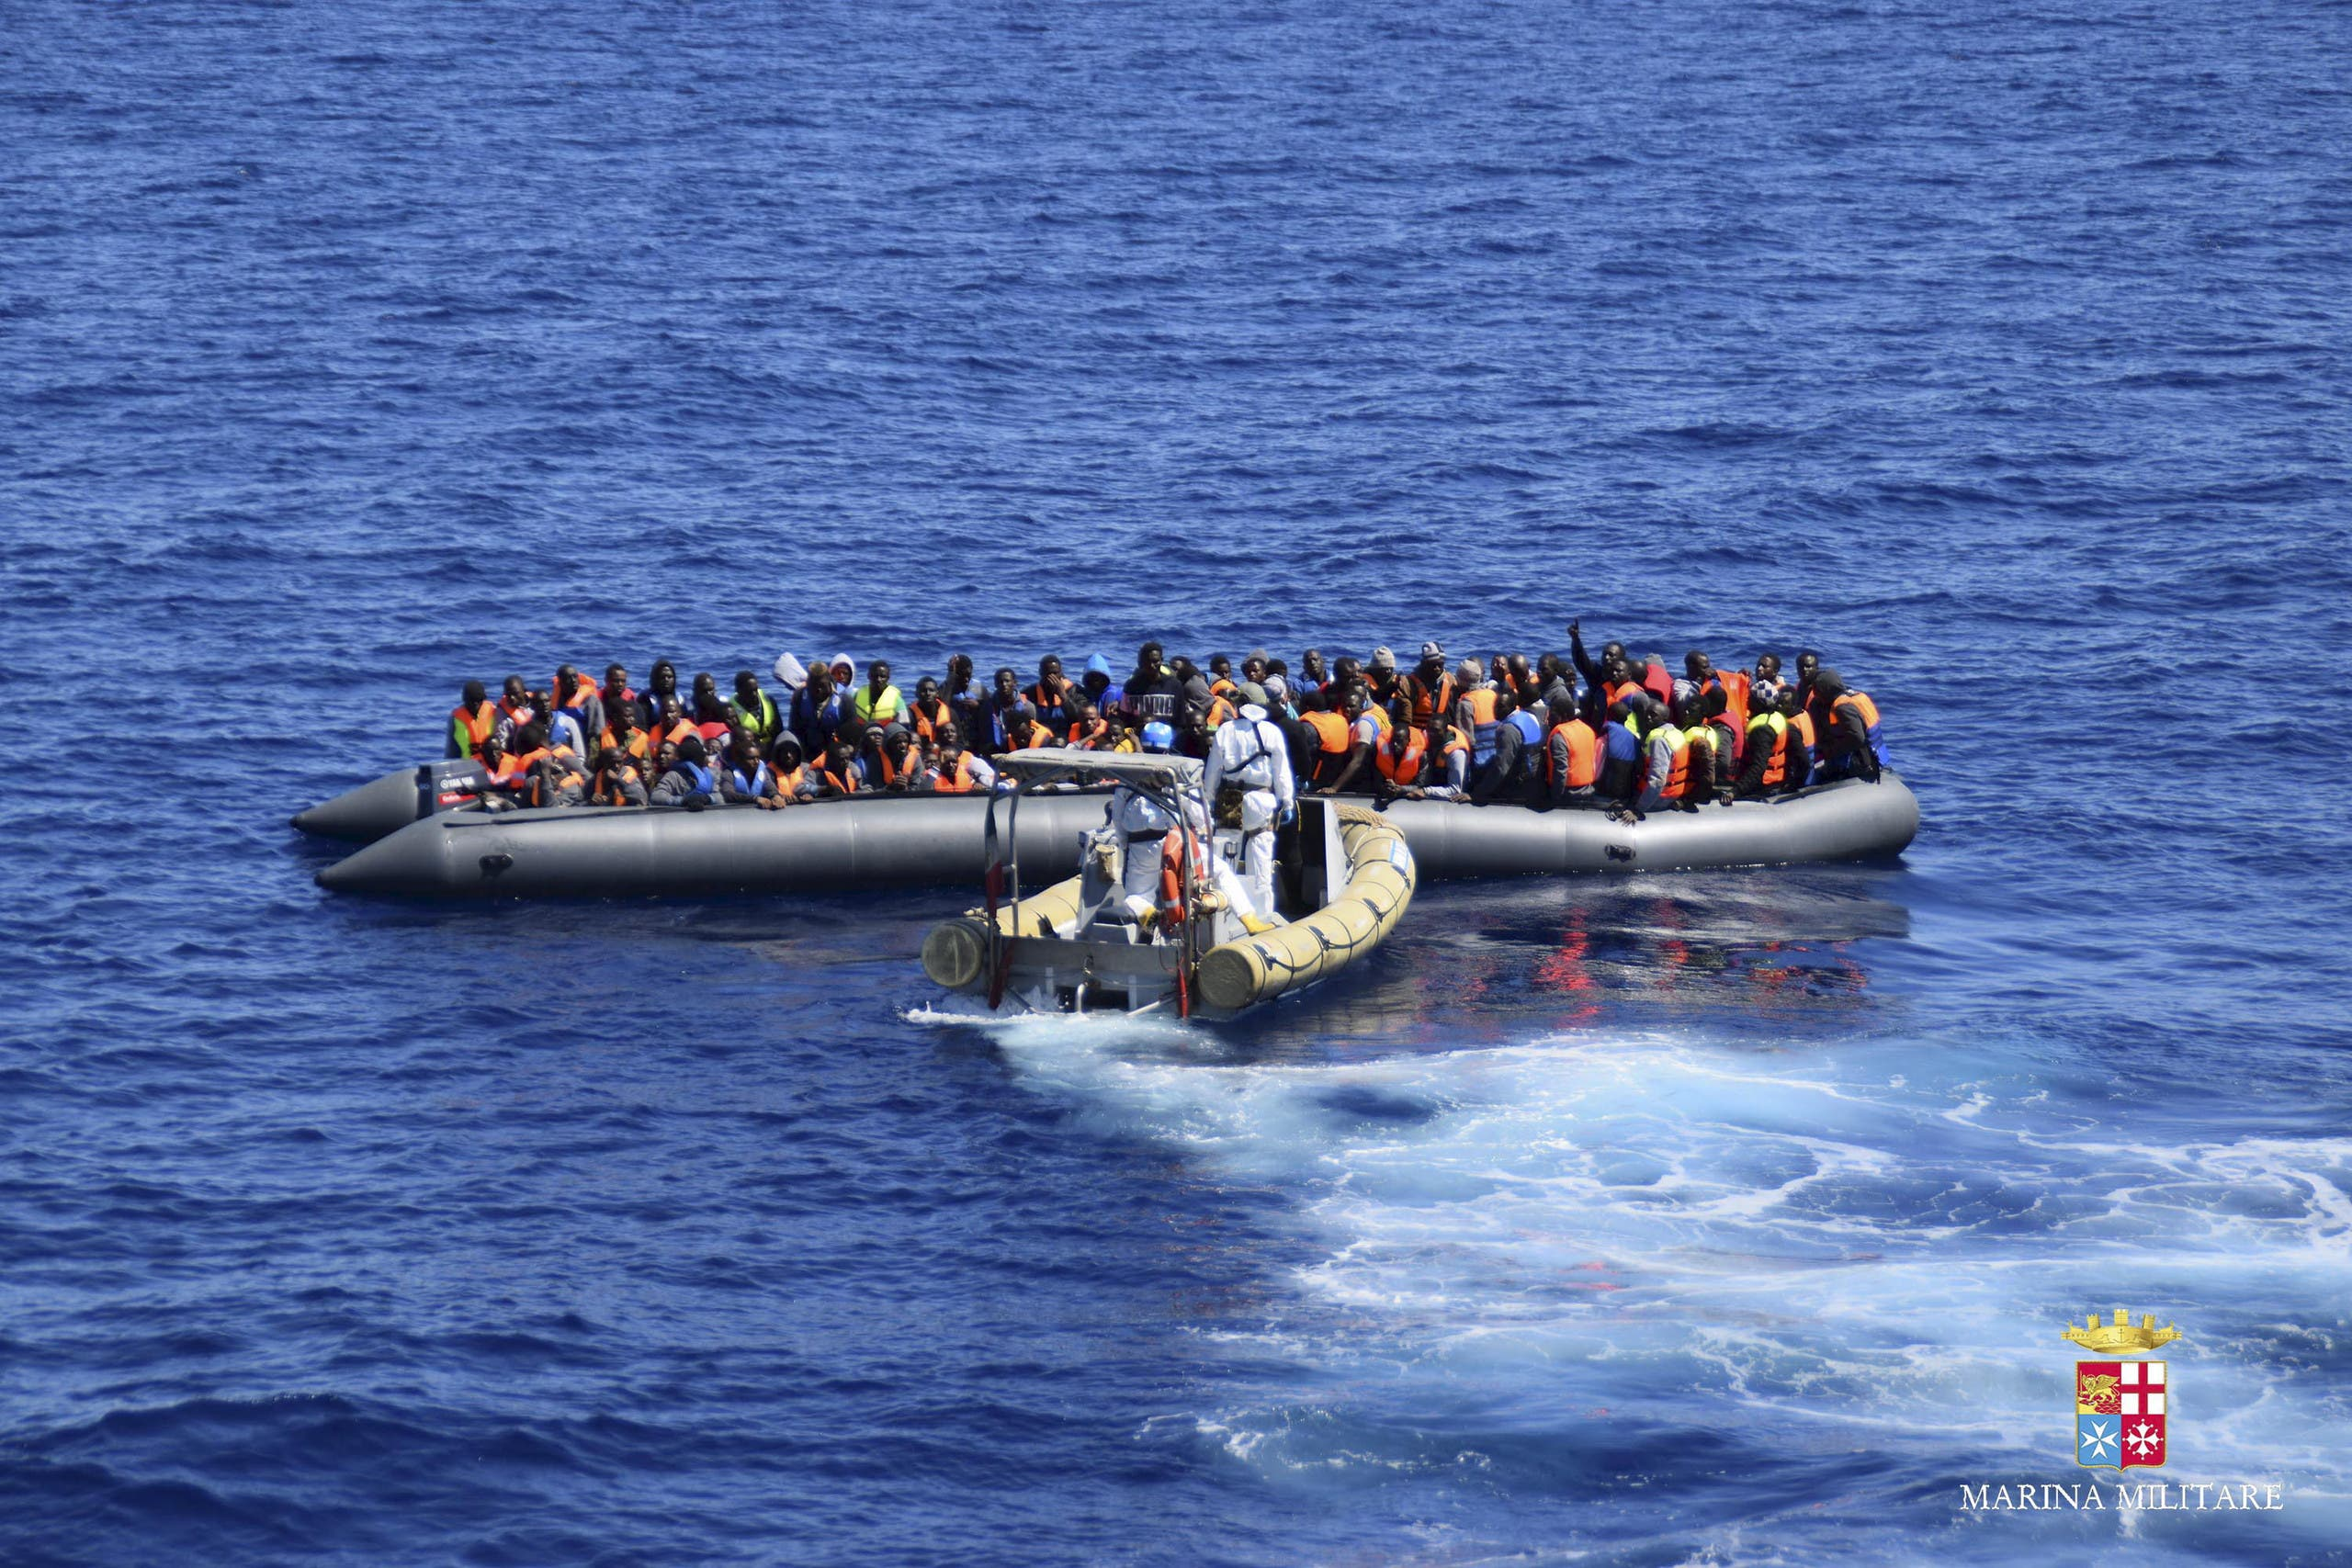 Migrants sit in their boat during a rescue operation by Italian Navy vessels off the coast of Sicily in this April 11, 2016 handout picture provided by Italy's Marina Militare. (Reuters)